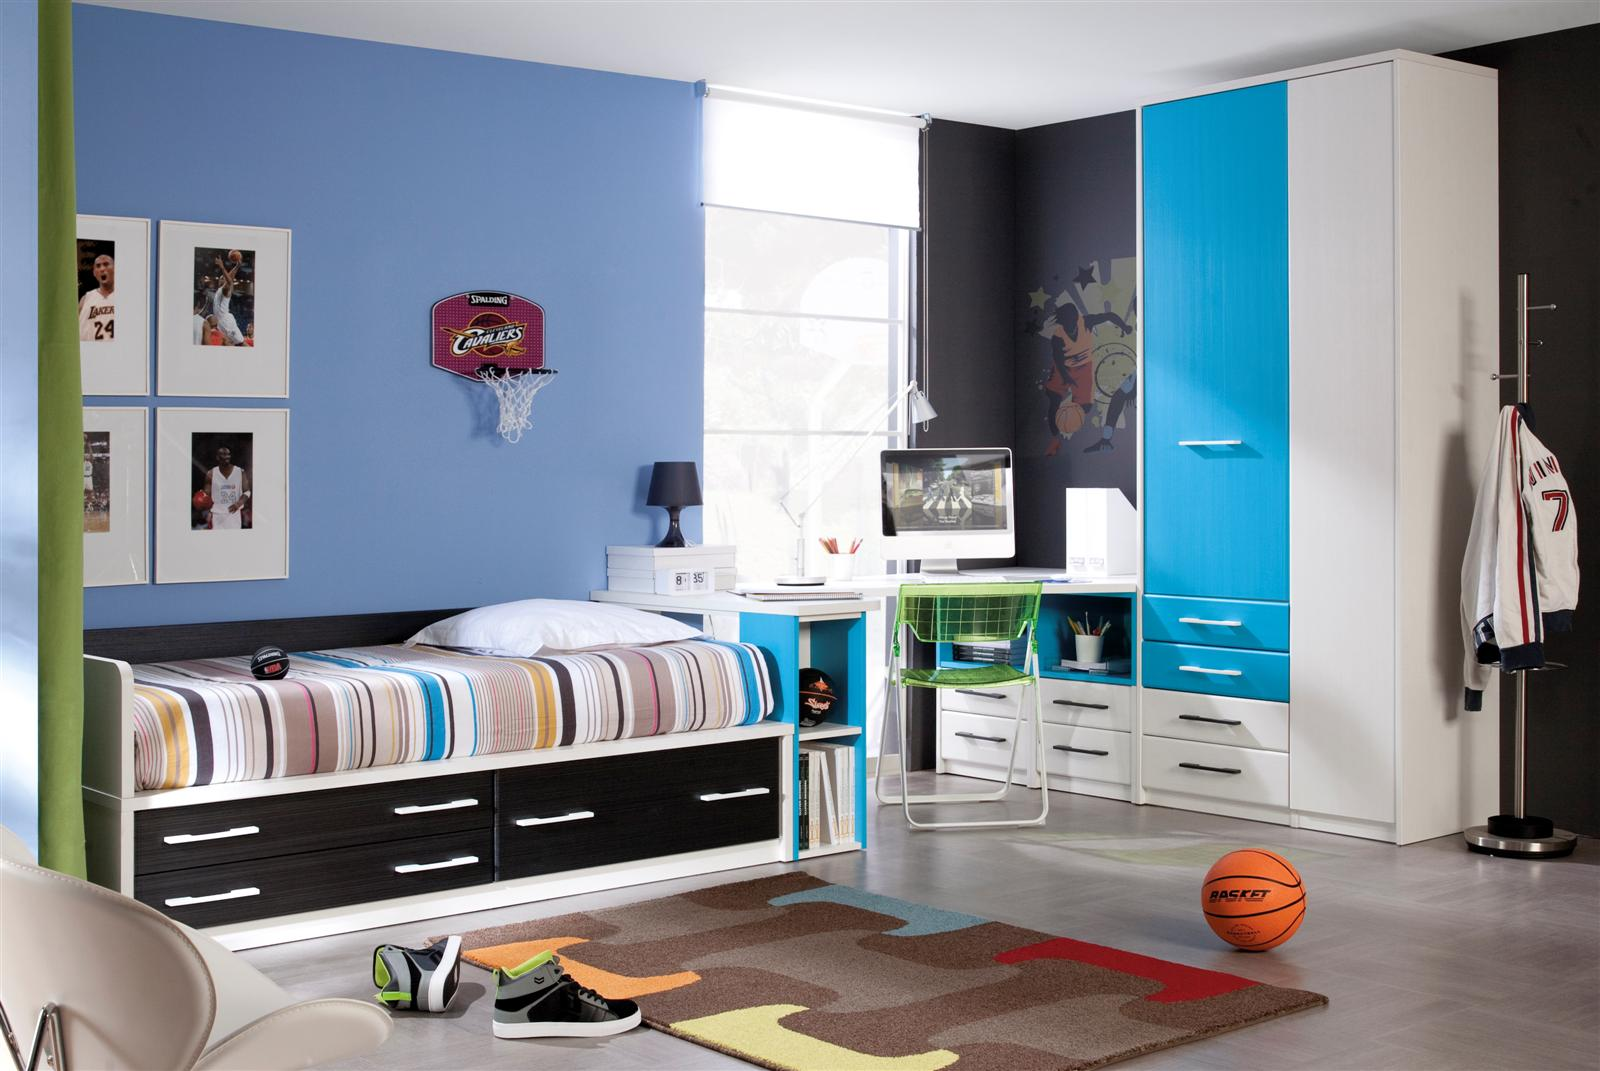 Psicolog a del color para decorar habitaciones infantiles for Como decorar un dormitorio de bebe